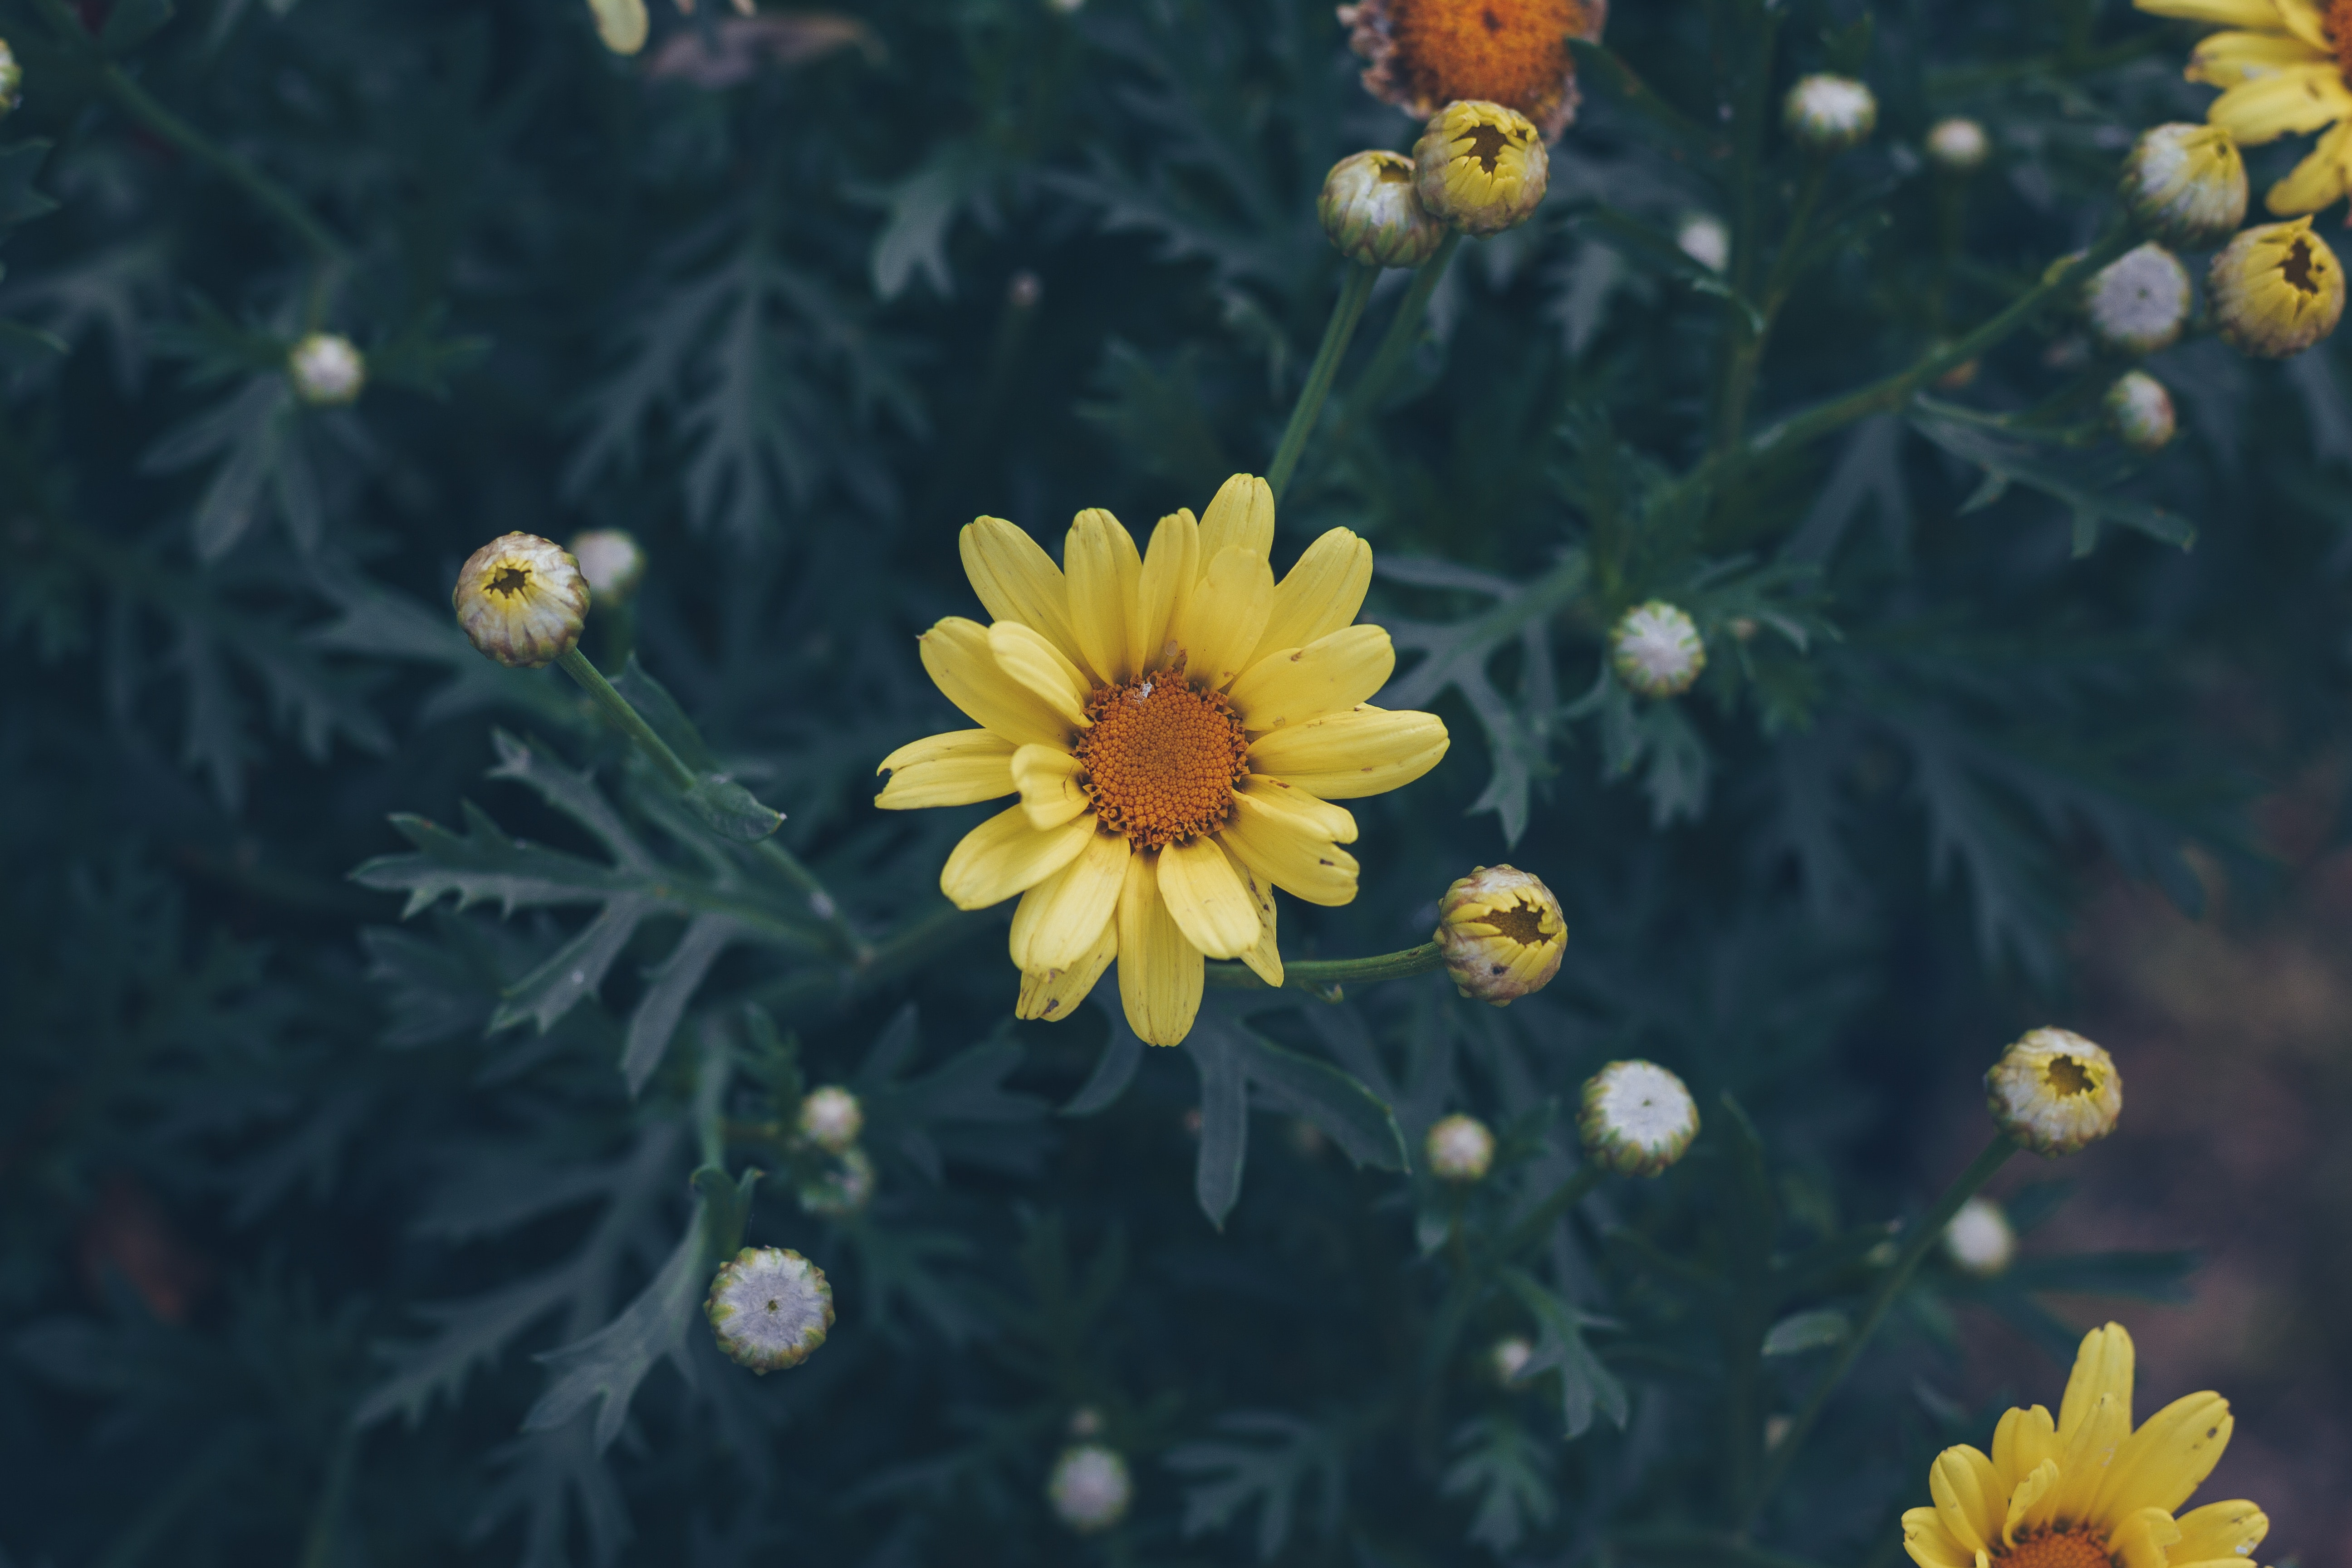 141136 Screensavers and Wallpapers Flower Bed for phone. Download Flowers, Flower, Blur, Smooth, Flower Bed, Flowerbed pictures for free